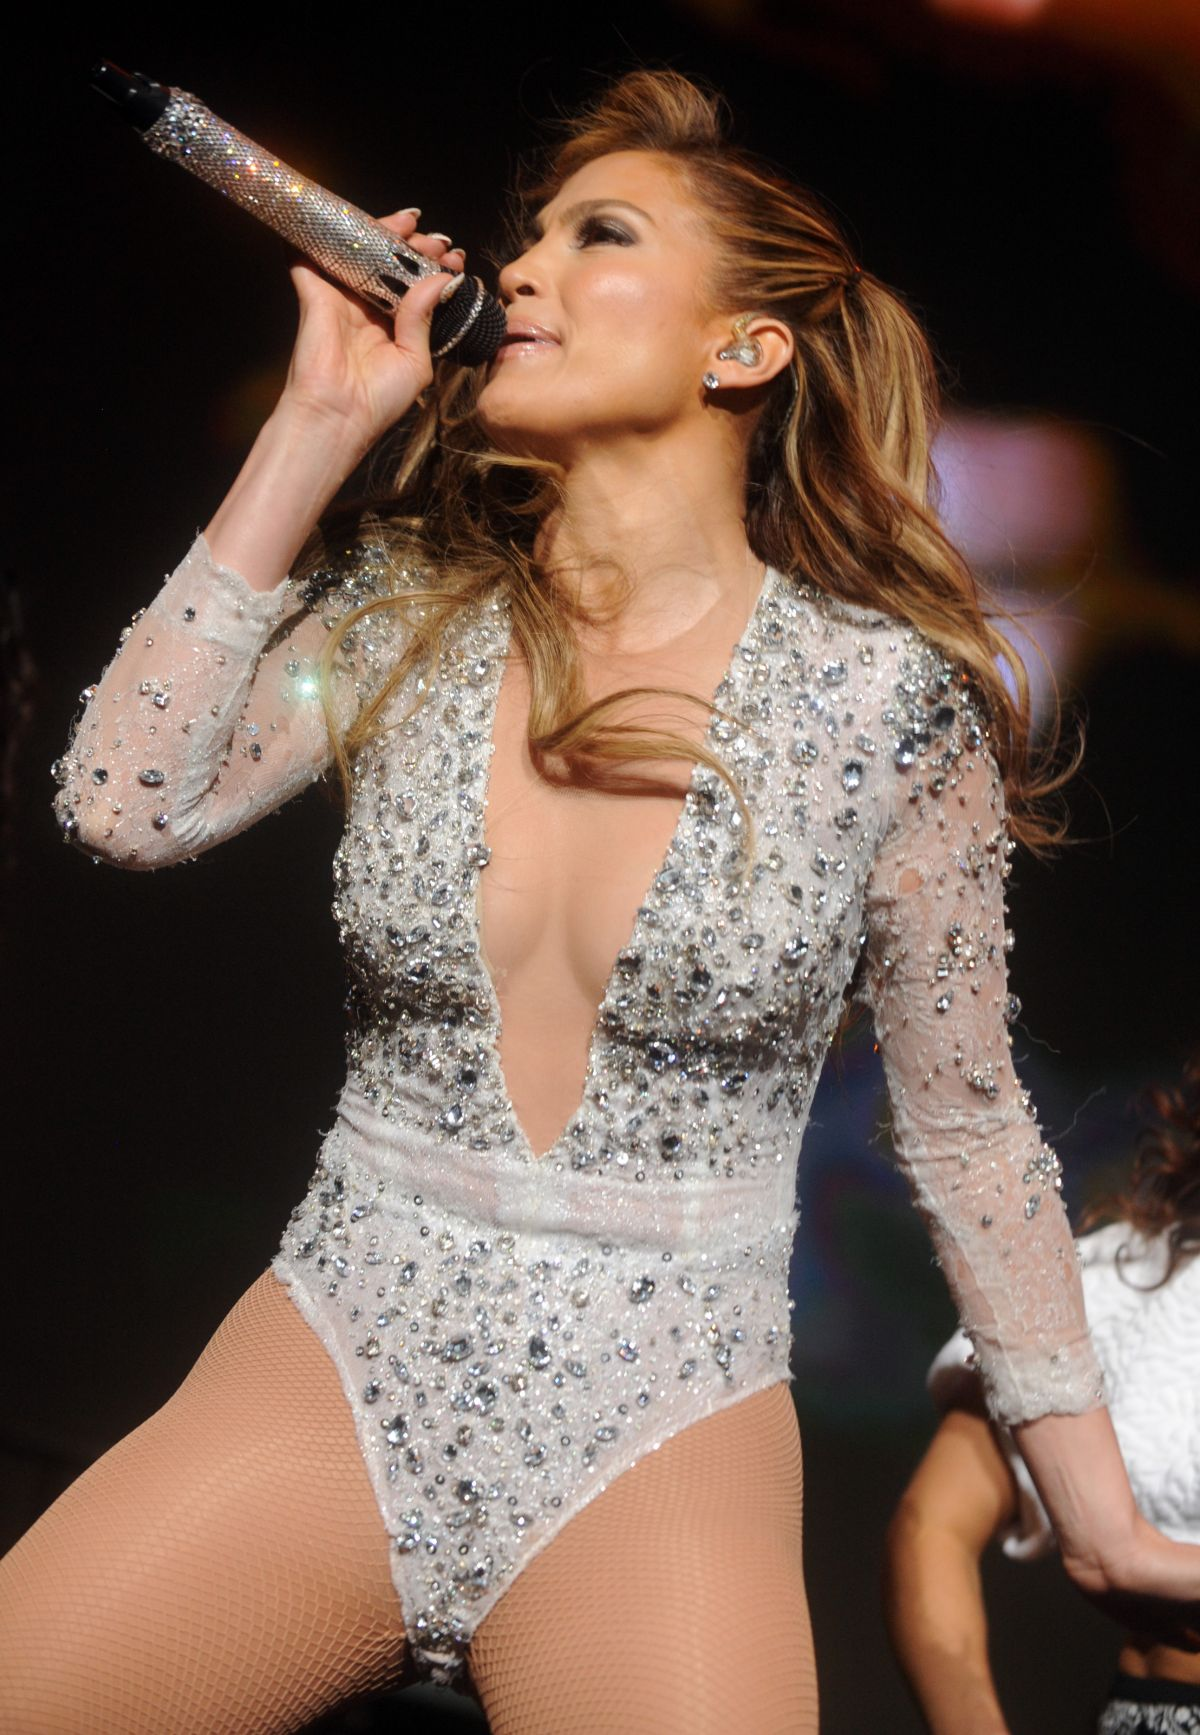 jennifer-lopez-fly-girl-video-hott-ass-videos